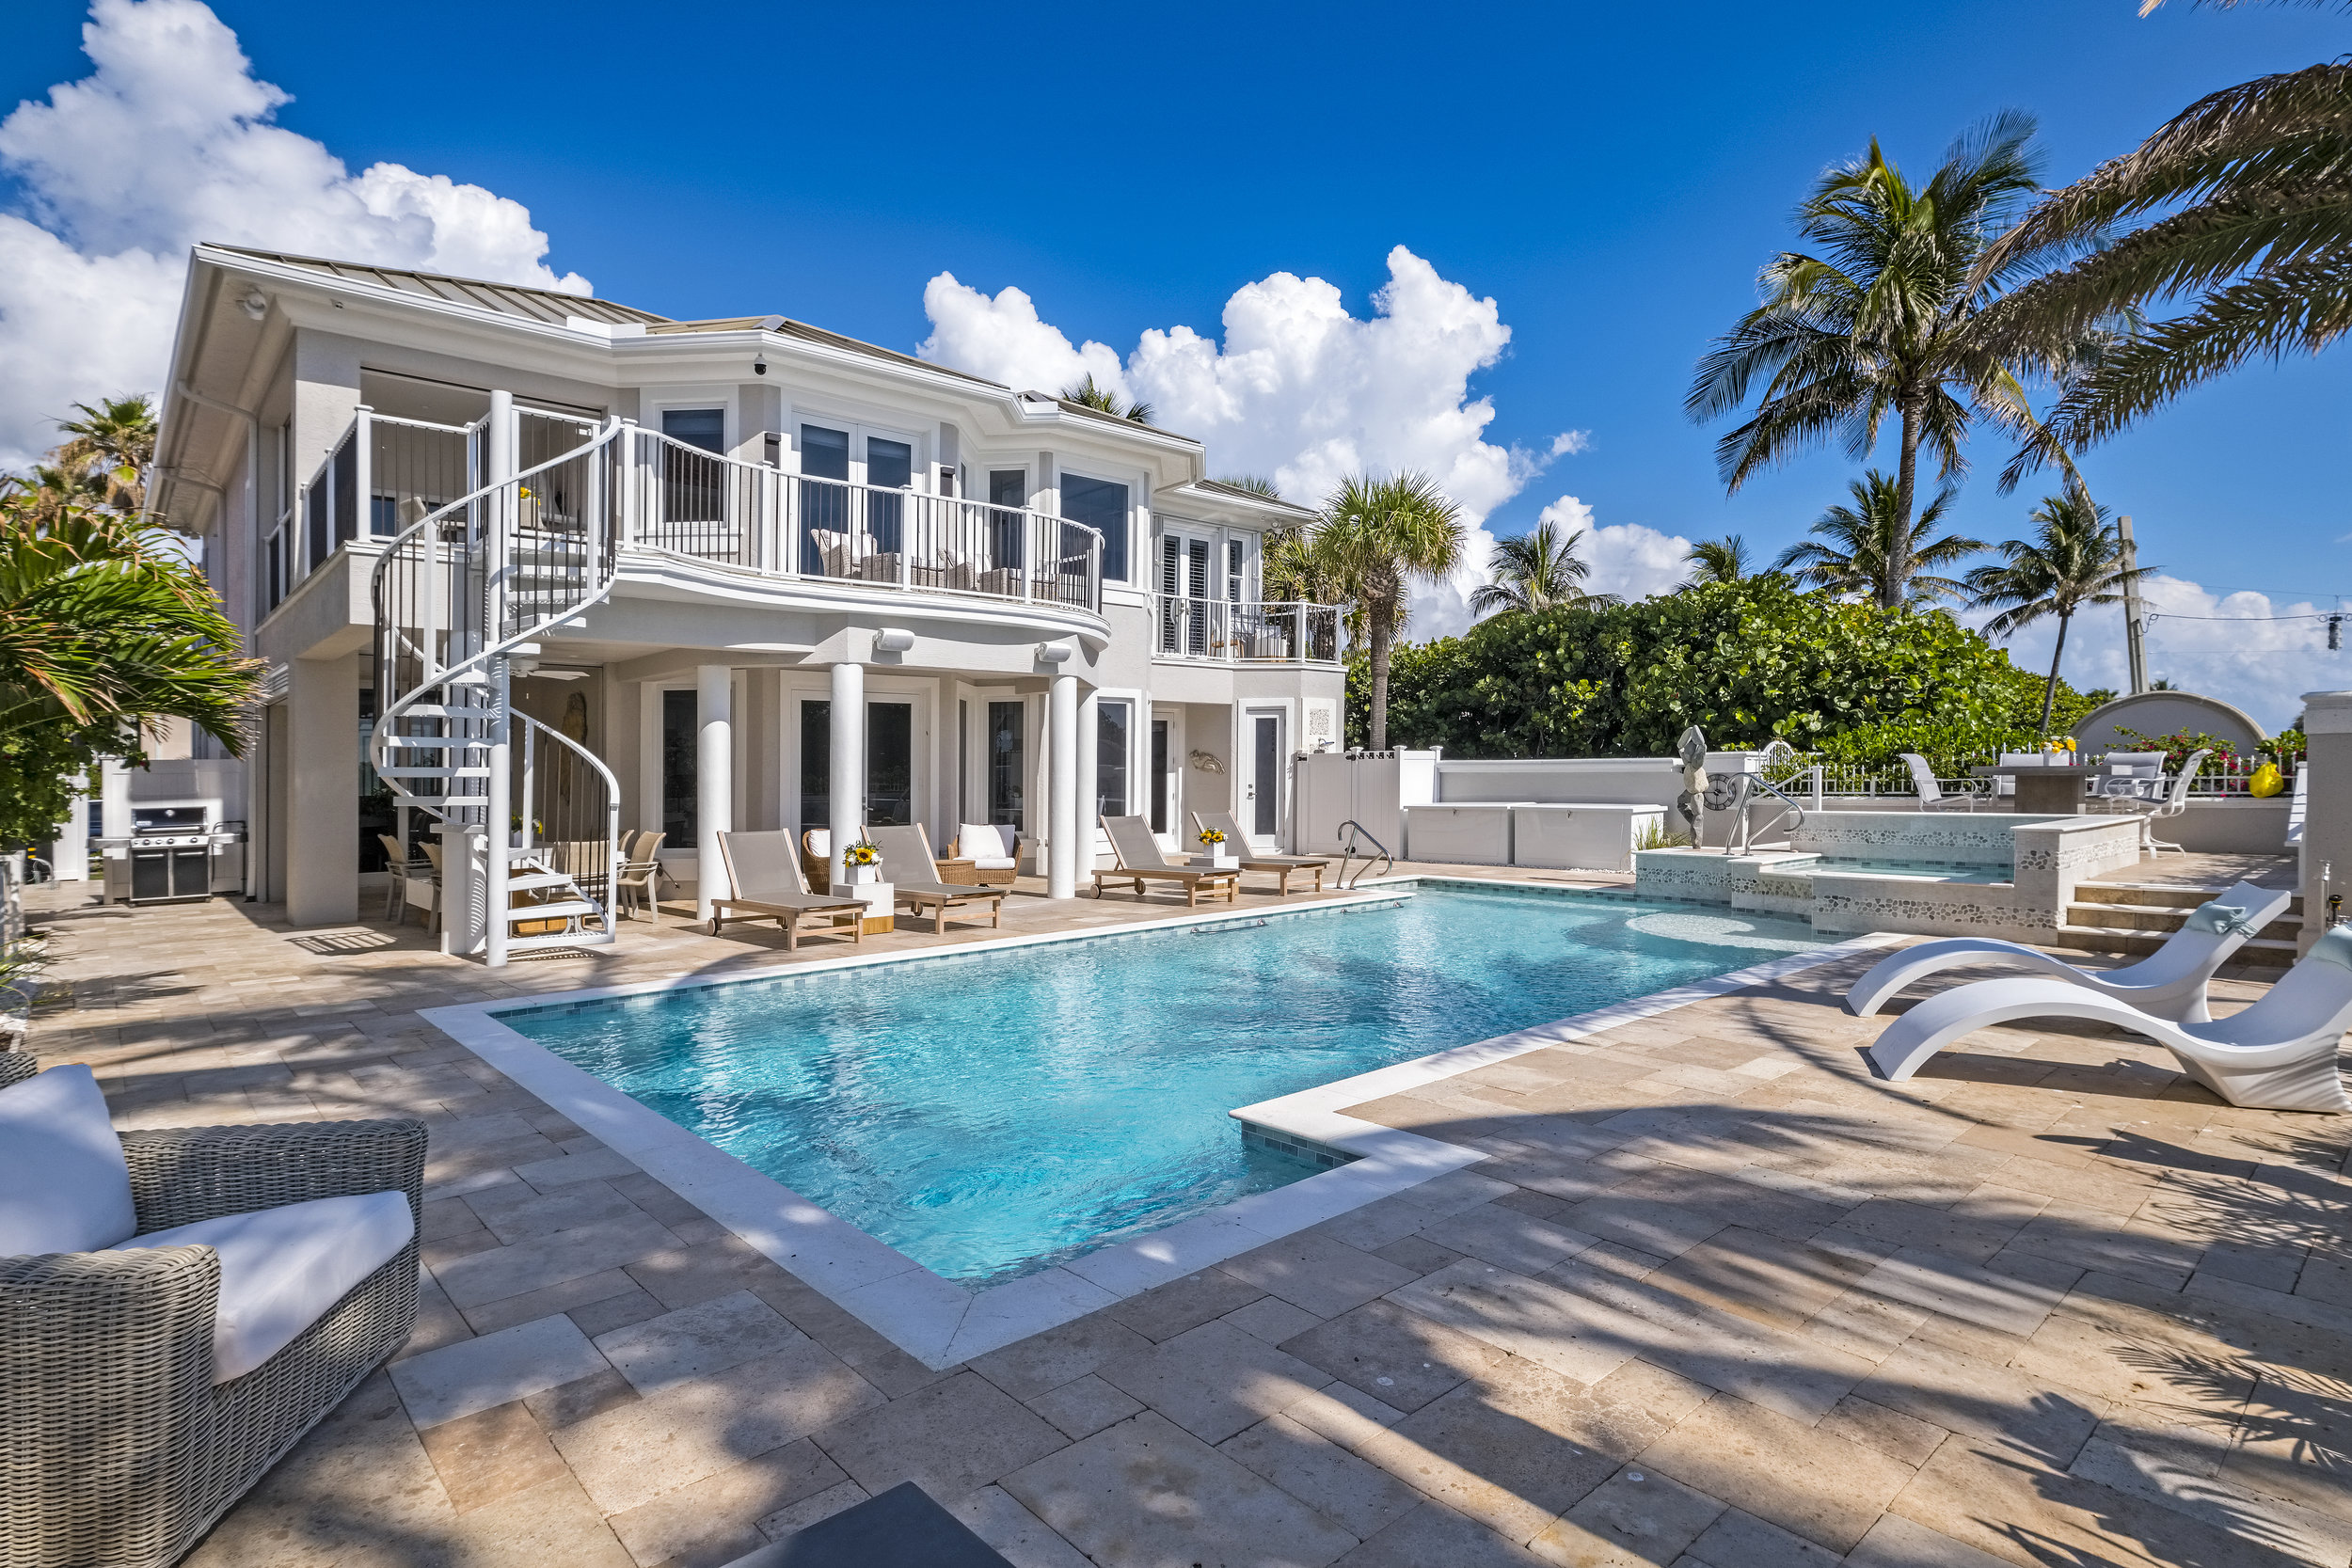 Juno Beach Renovation